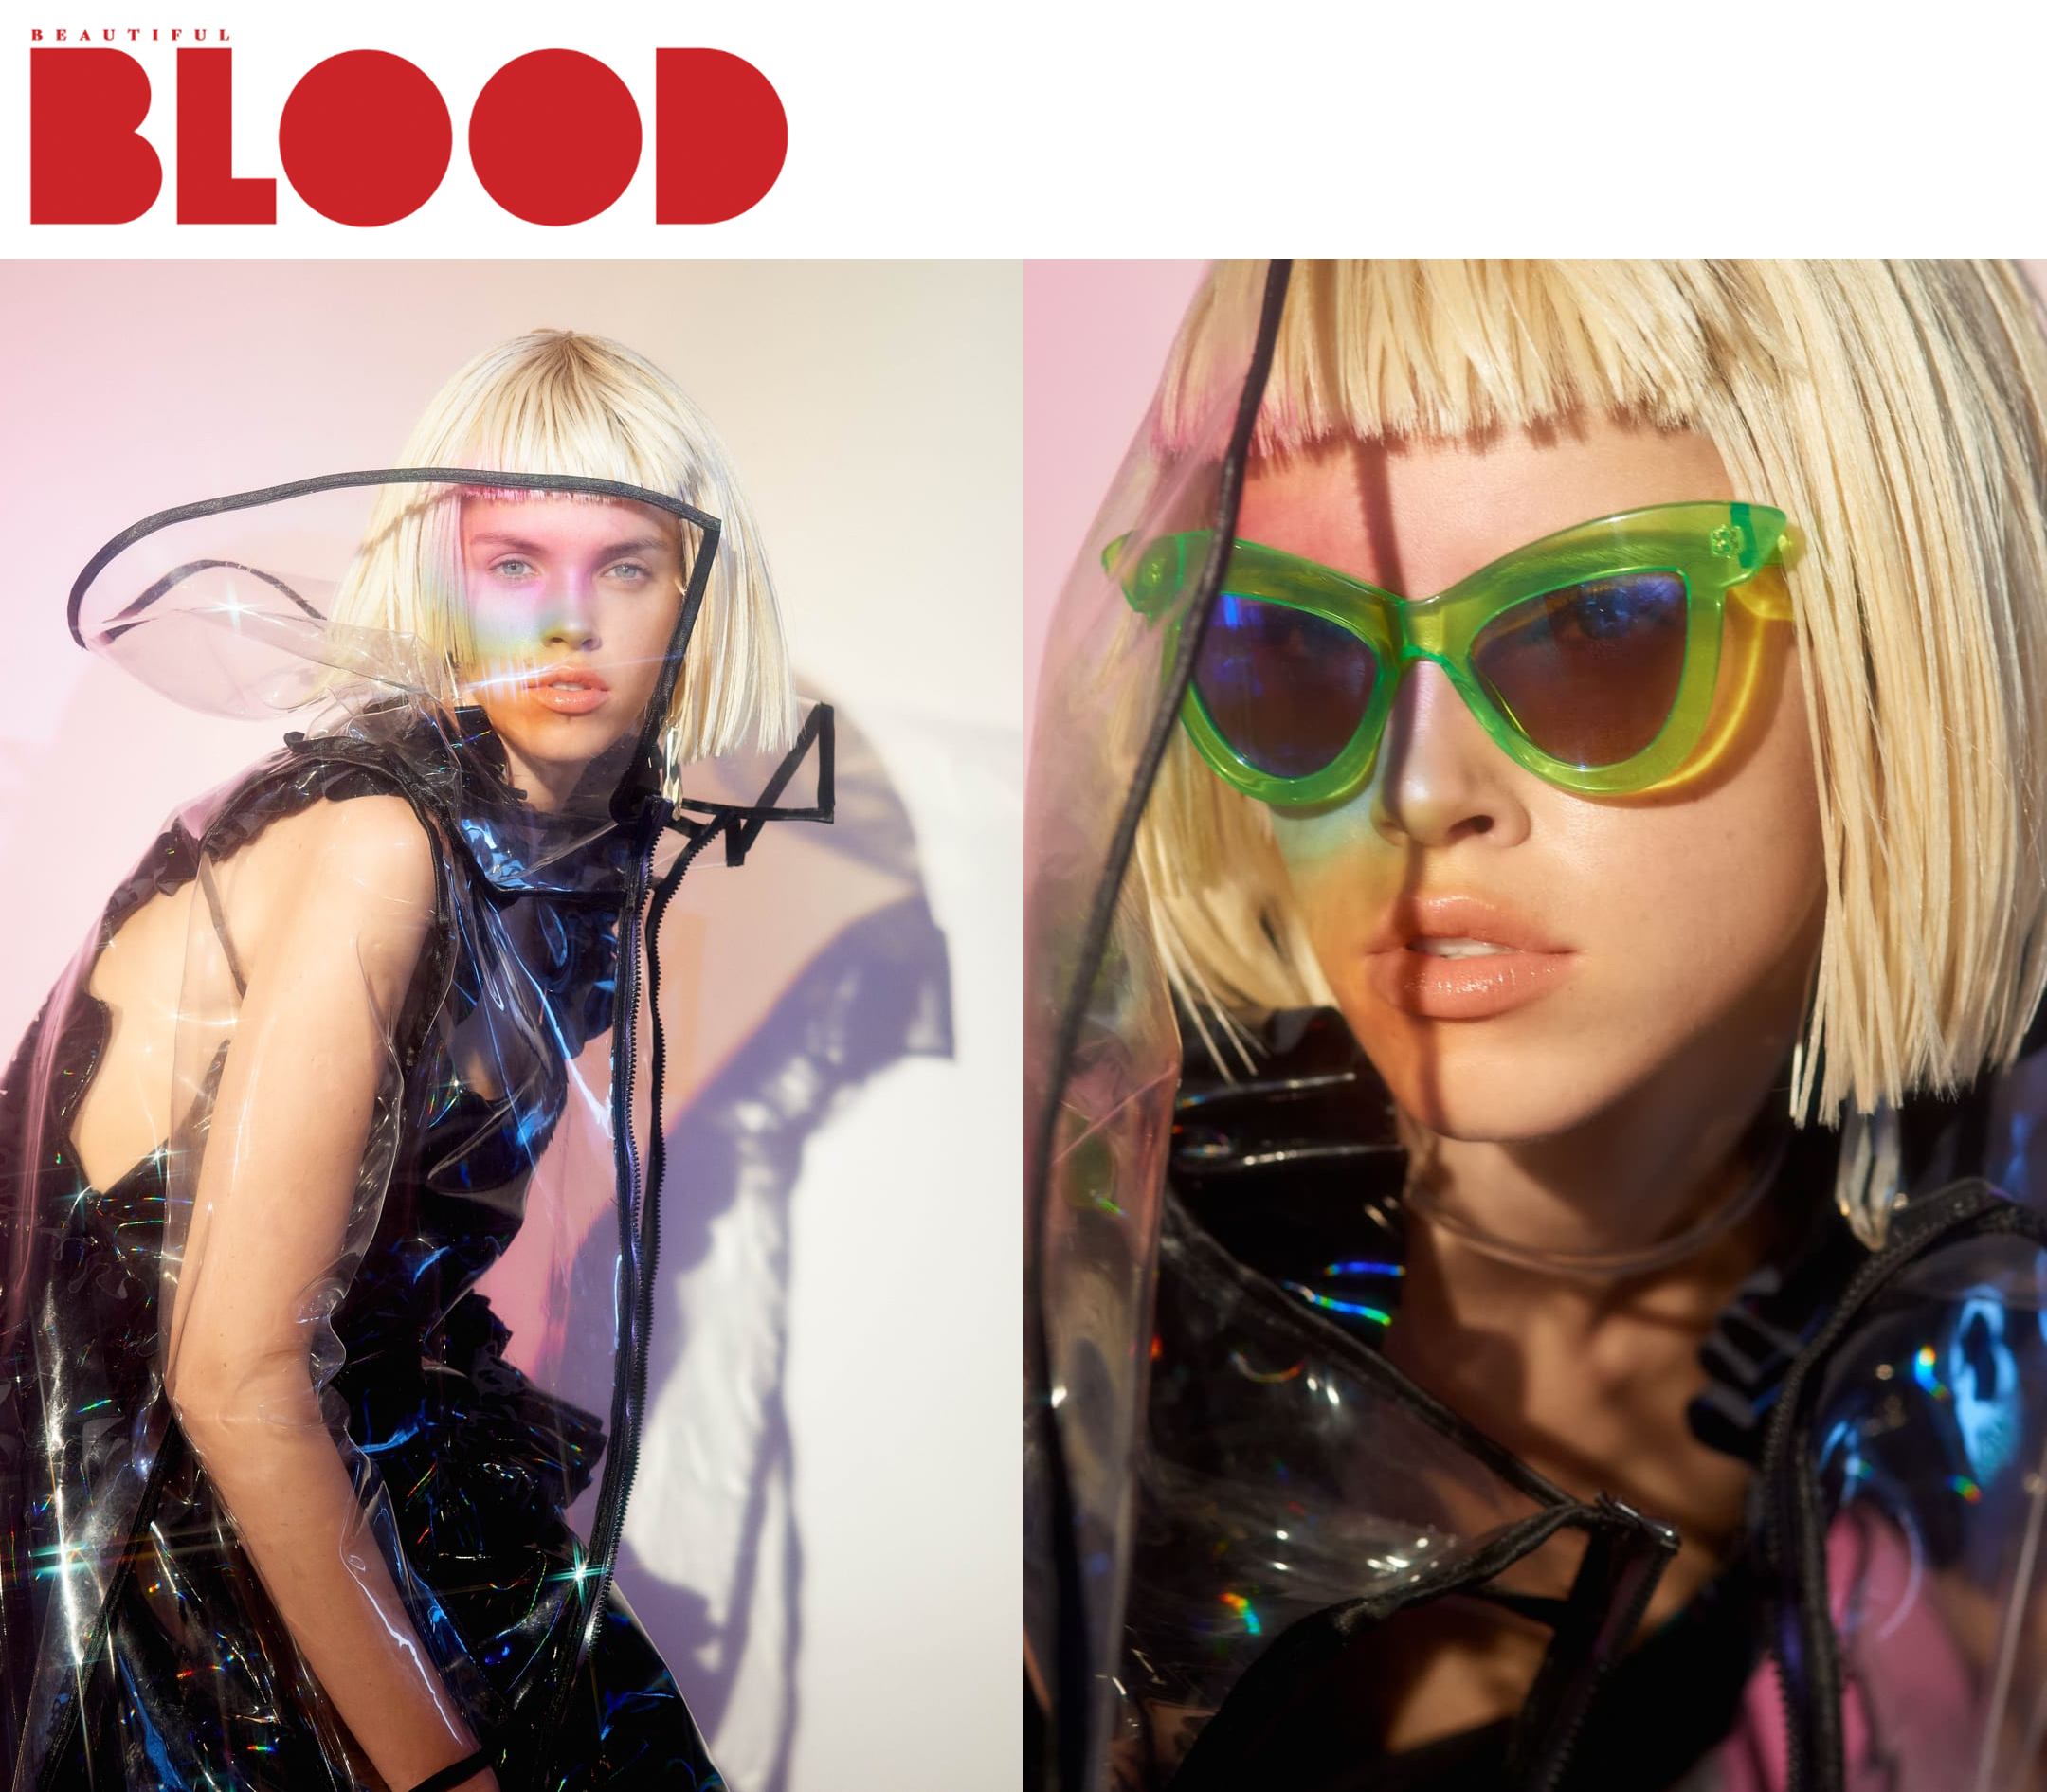 Beautiful Blood    Rute Bock     Industry Model Management    Photographers / FIONAYEDUARDO, Styling / HATTIE DOOLITTLE , Hair / JENNI IVA WIMMERSTEDT, Makeup / JENNY SAUCEDA  fashion editorial featuring kelsey randall holographic rainbow vinyl black pvc ruffle dress shoulder hip  Kelsey Randall  dreamy demi-couture womenswear crafted in nyc  for future icons, rock stars, and goddesses  made-to-measure bespoke handcrafted custom bridal  made in NYC brooklyn bushwick new york city  sustainable ethical diverse boss lady werk